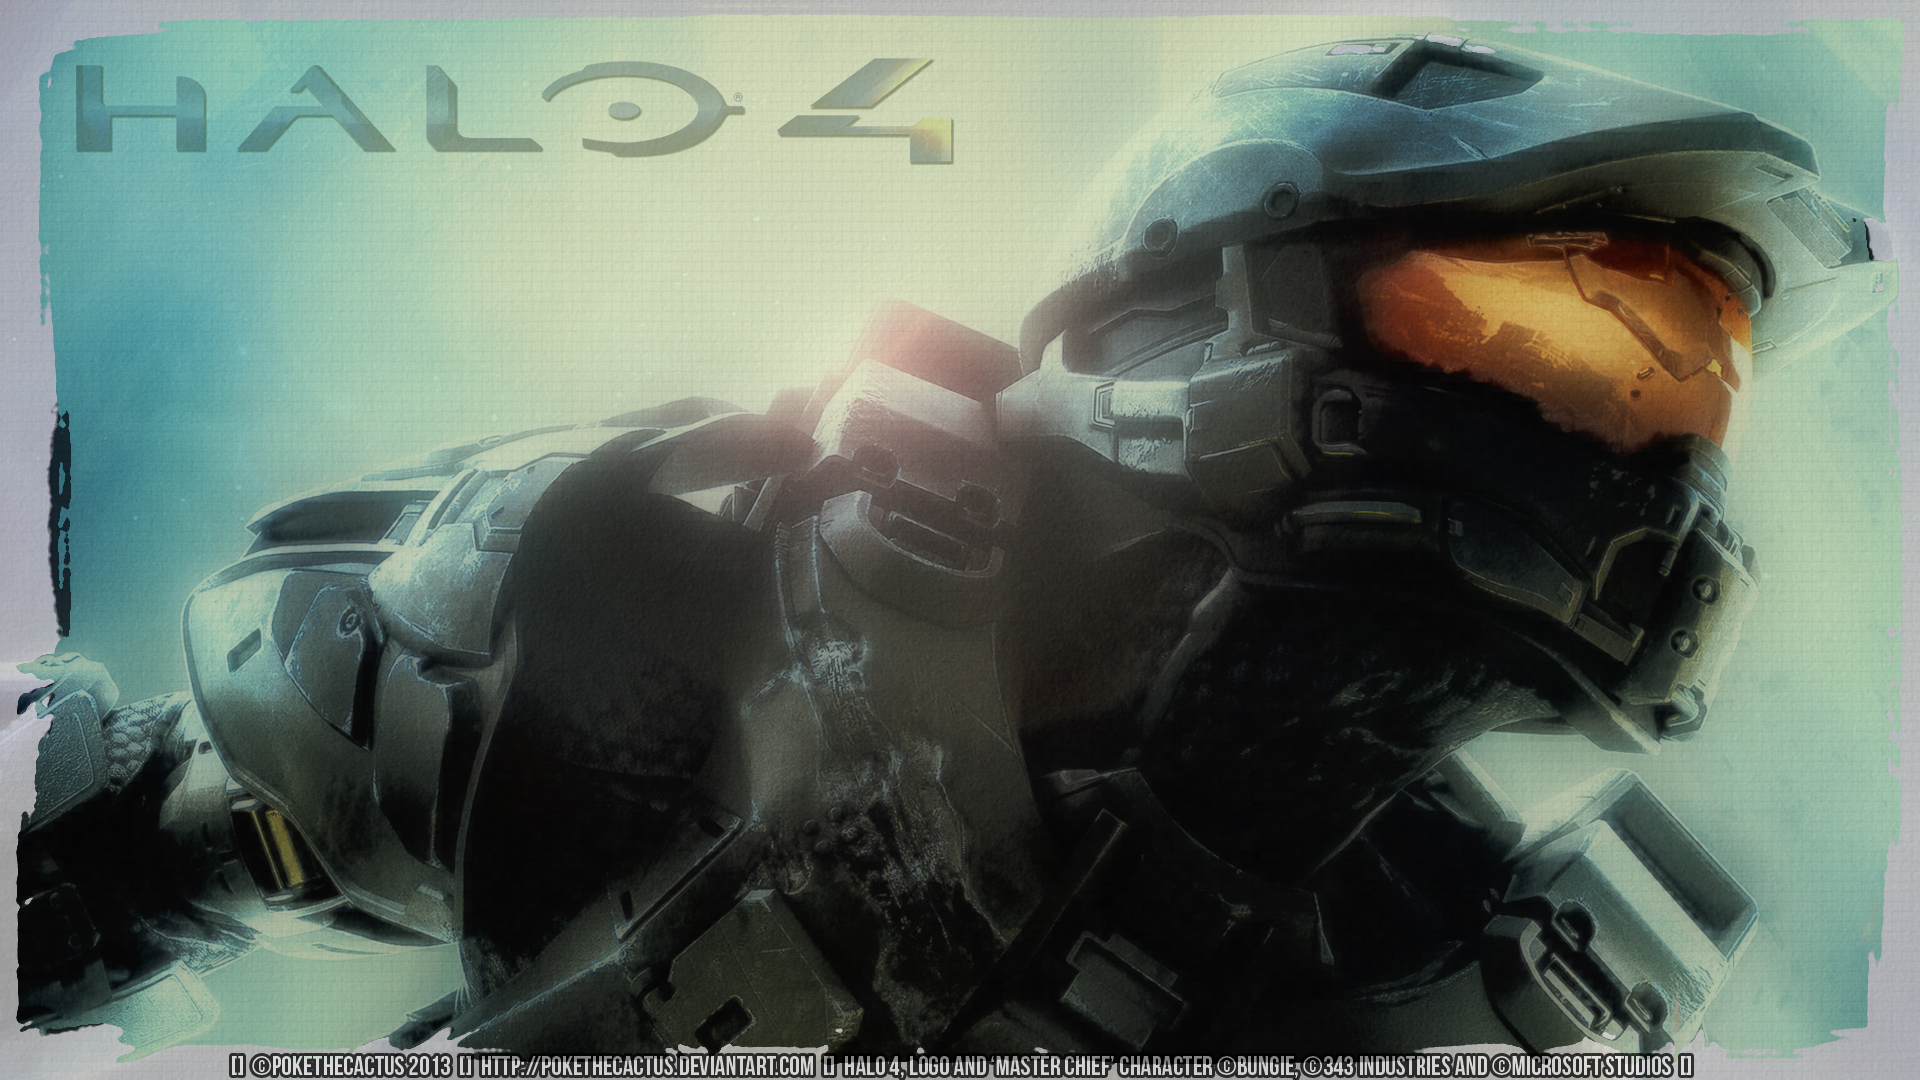 Halo 4 The Chief Wallpaper By Pokethecactus On